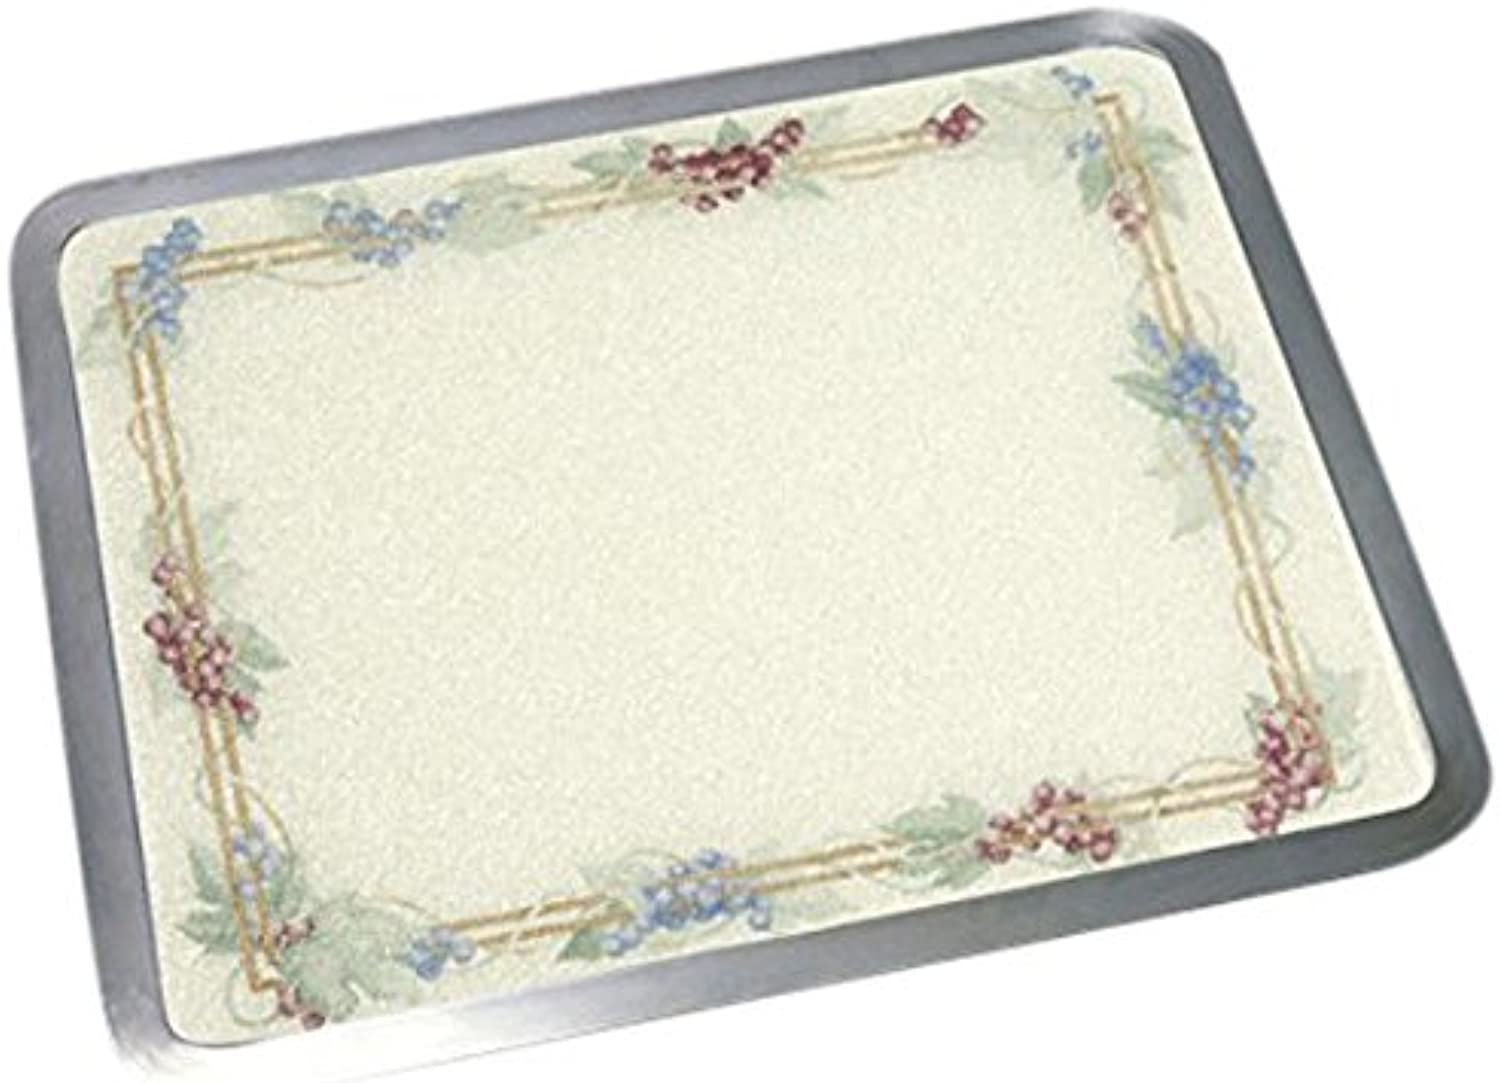 Vance Surface Saver 71620GVA 16 X 20  Almond Grapevine Built-in Surface Saver Tempered Glass Cutting Board, Almond Grapevine